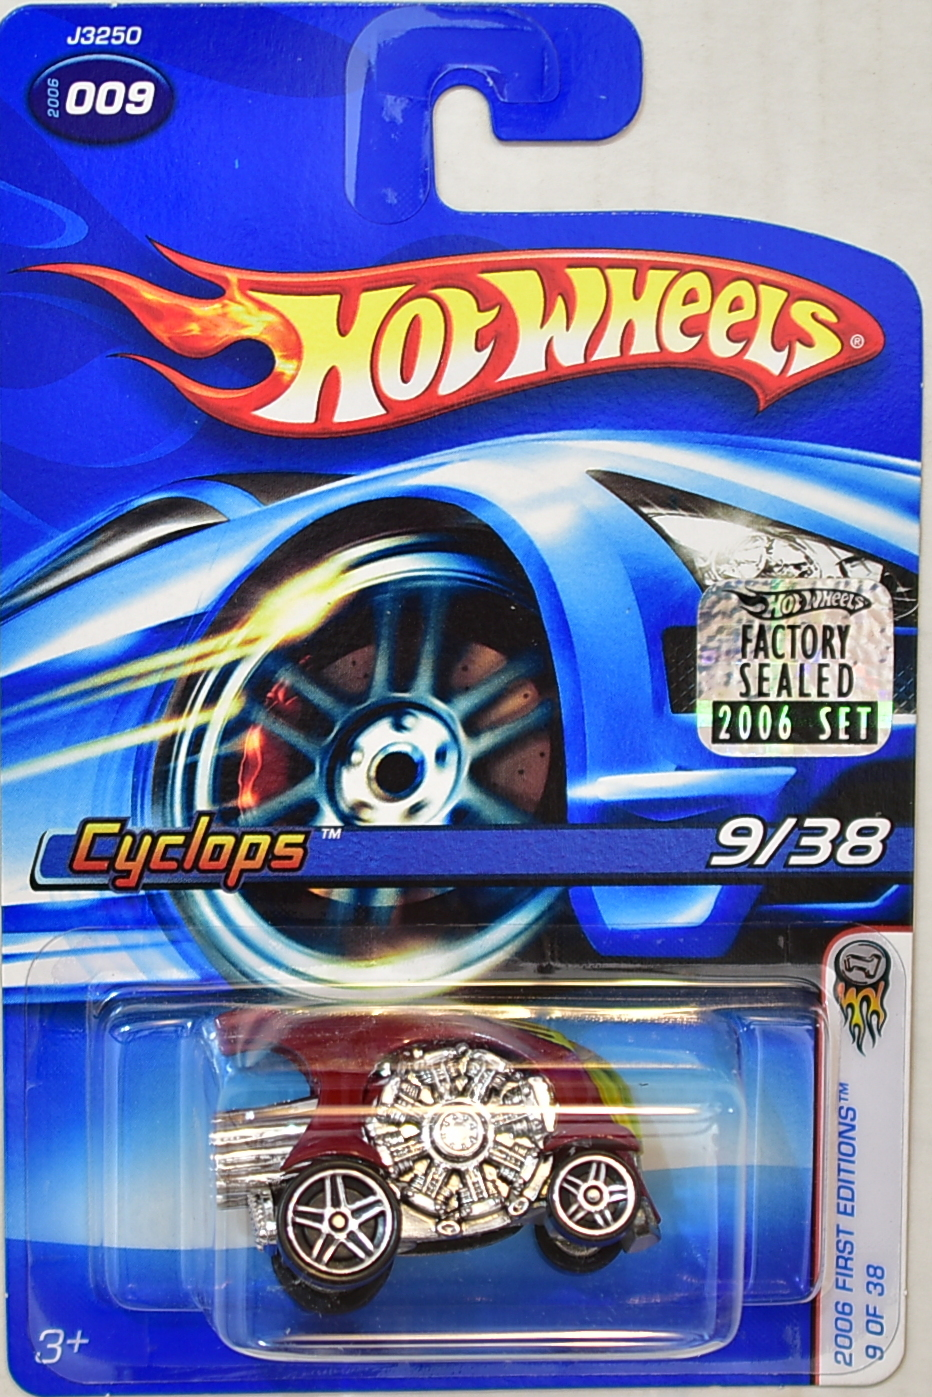 HOT WHEELS 2006 FIRST EDITIONS 9/38 CYCLOPS #009 FACTORY SEALED